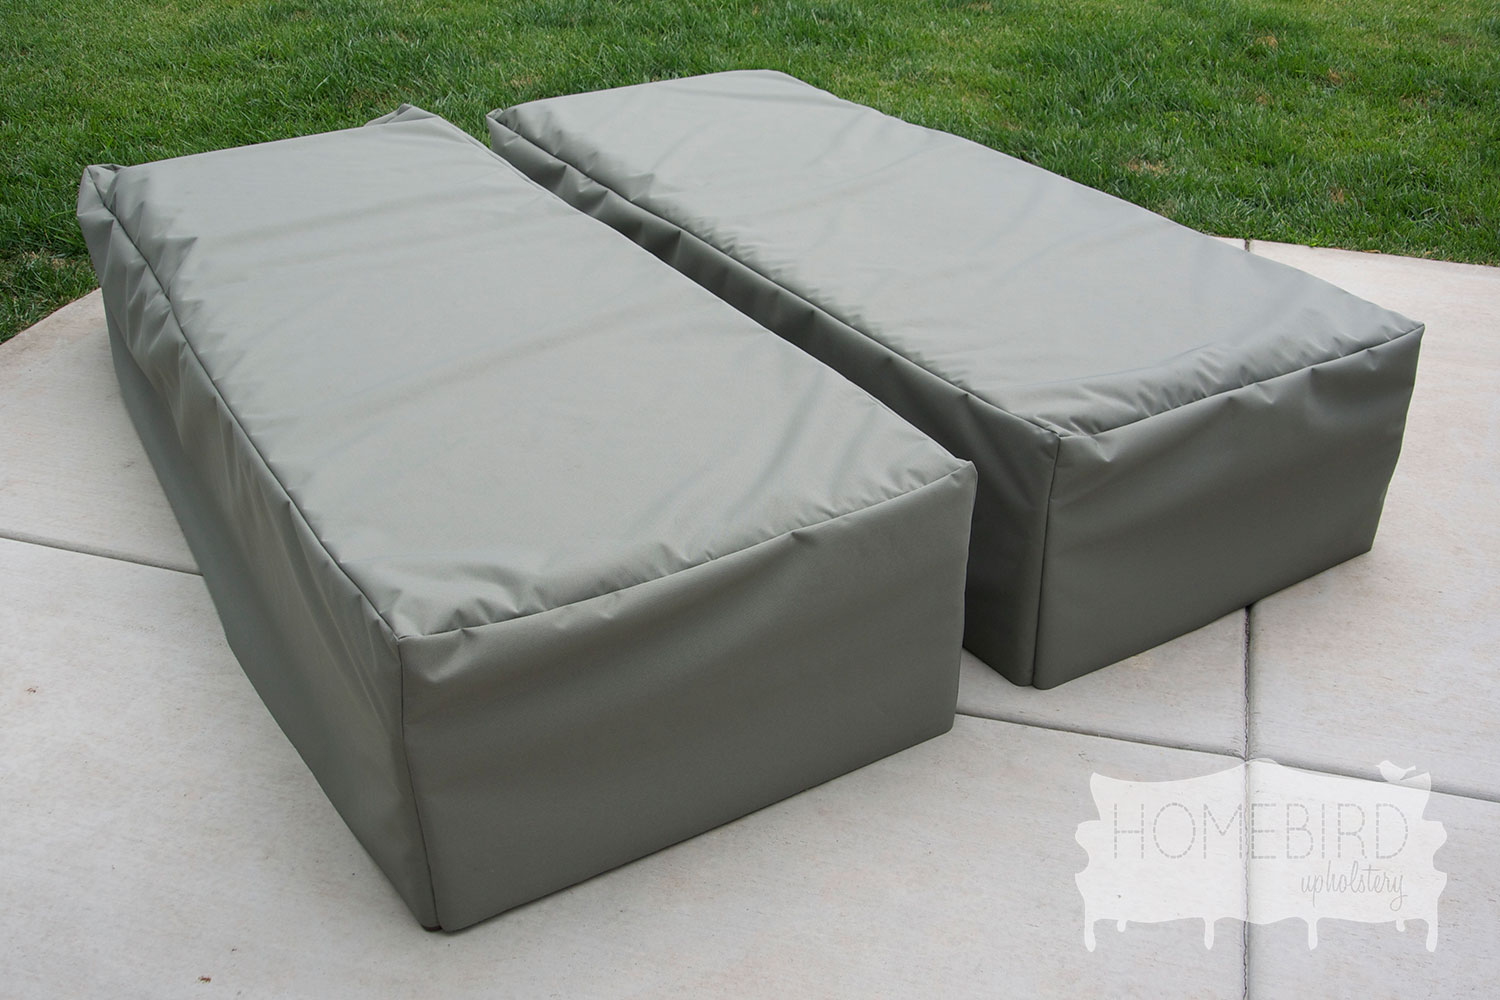 Custom Order: Patio Furniture Covers 2